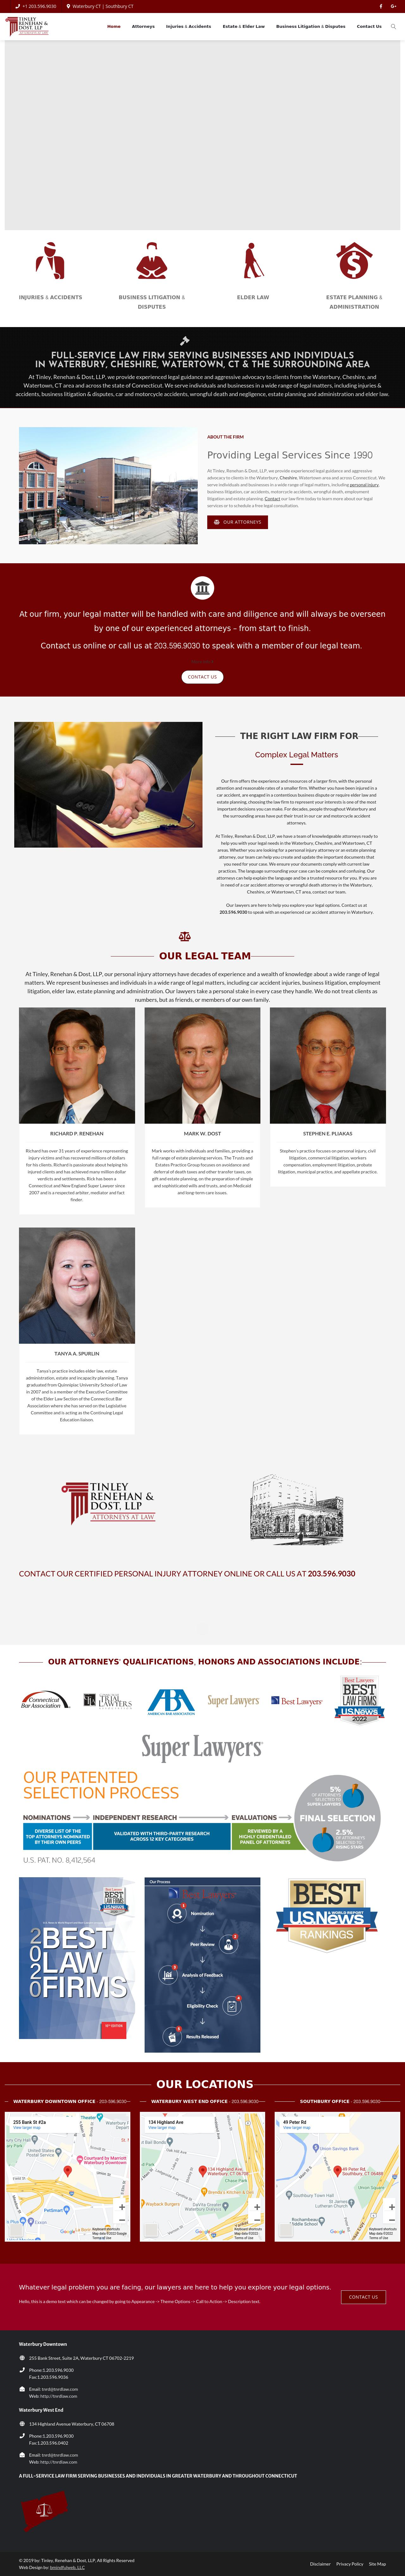 Tinley, Renehan & Dost, LLP - Waterbury CT Lawyers